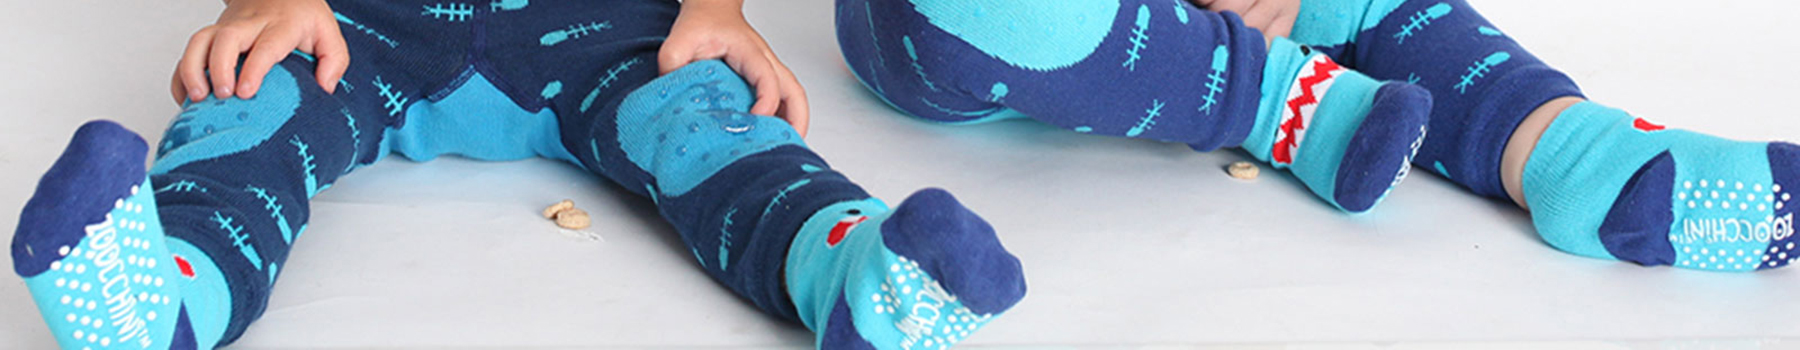 grip+easy™ crawler leggings & socks set